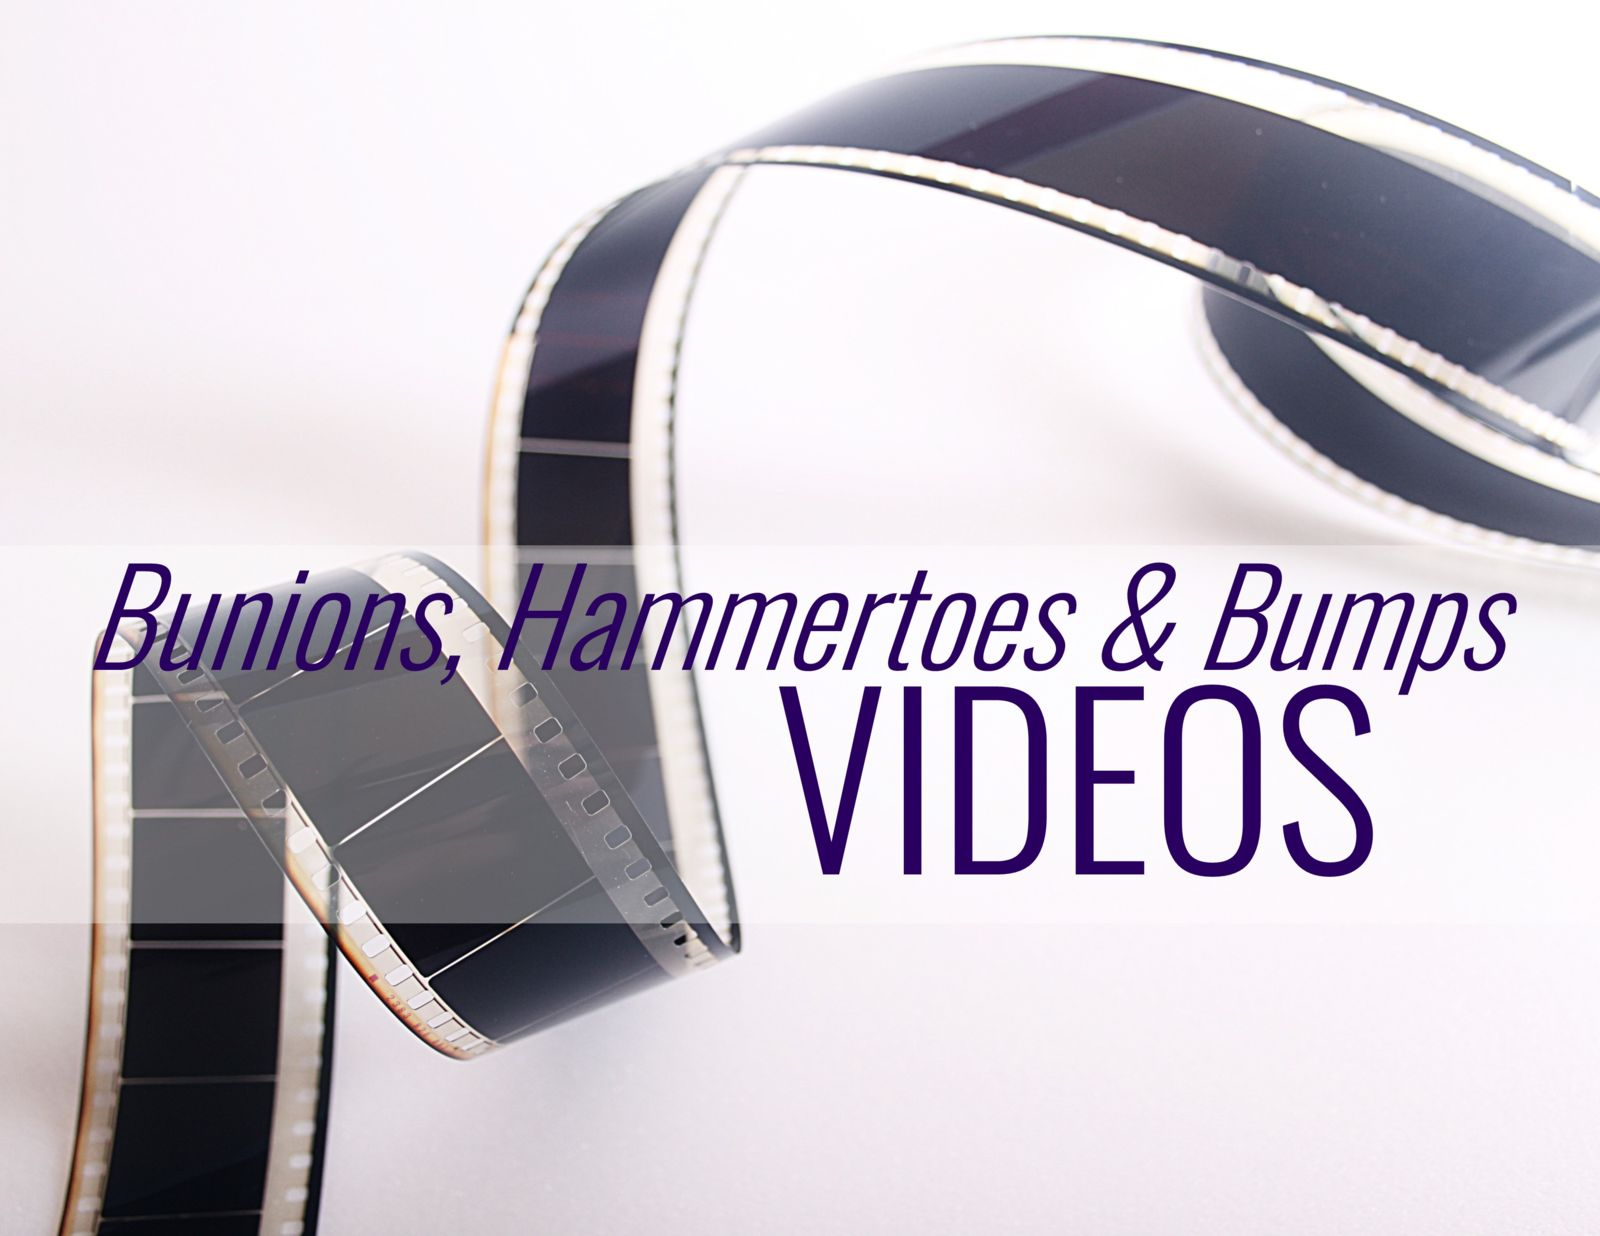 movie reel with words bunions, hammertoes & bumps videos